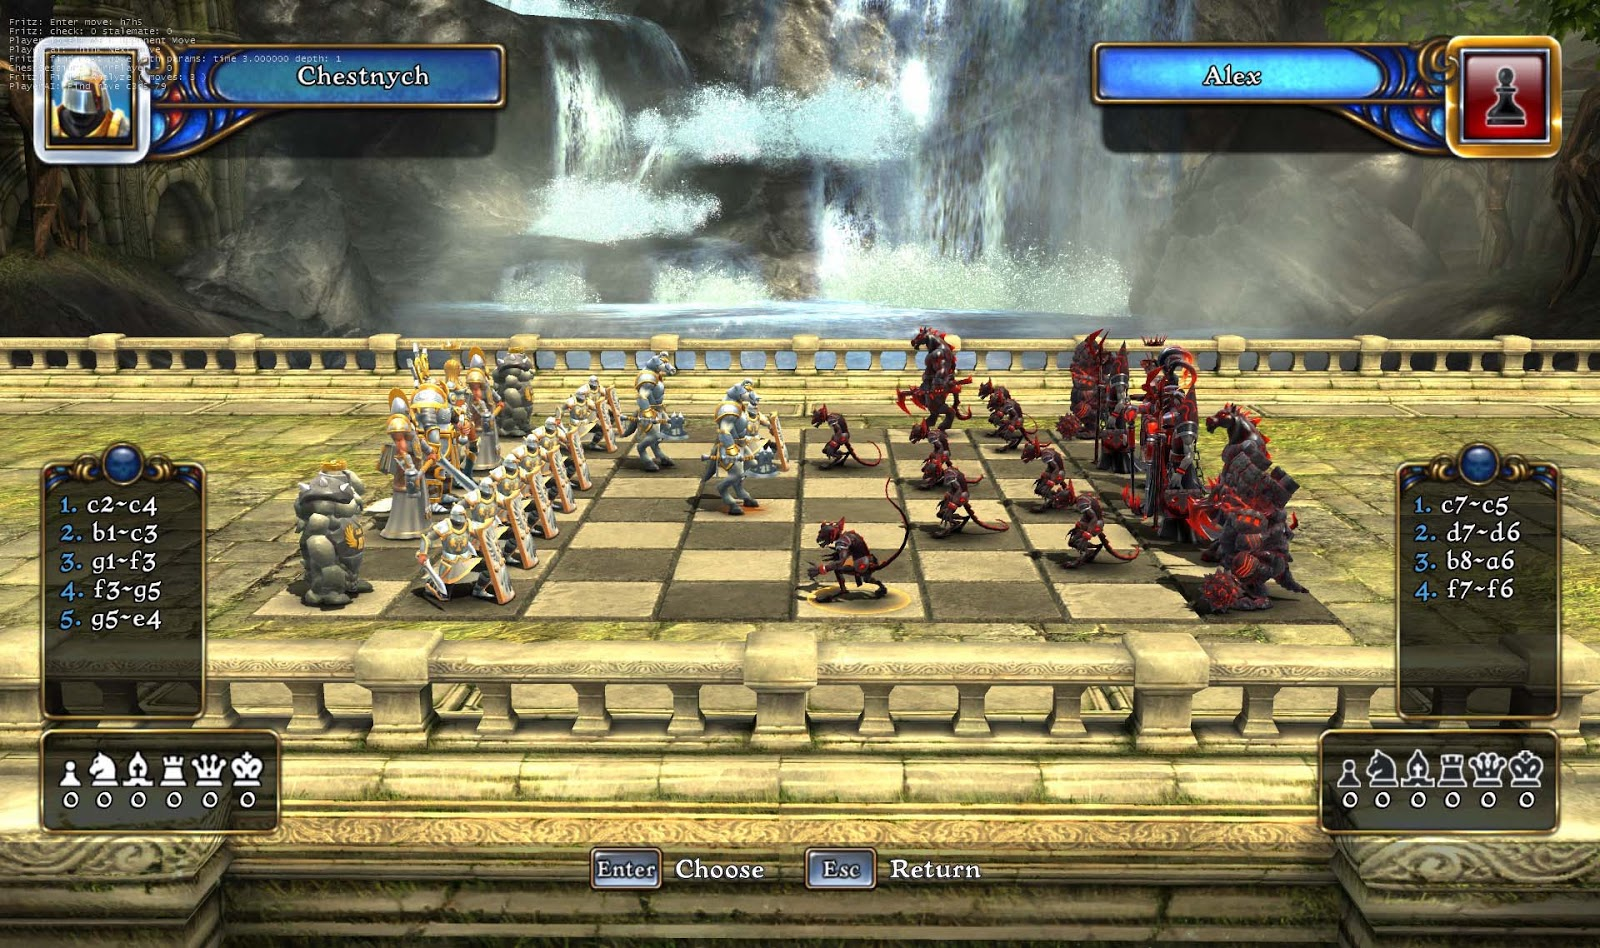 Battle-Vs-Chess-Gameplay-Screenshot-3